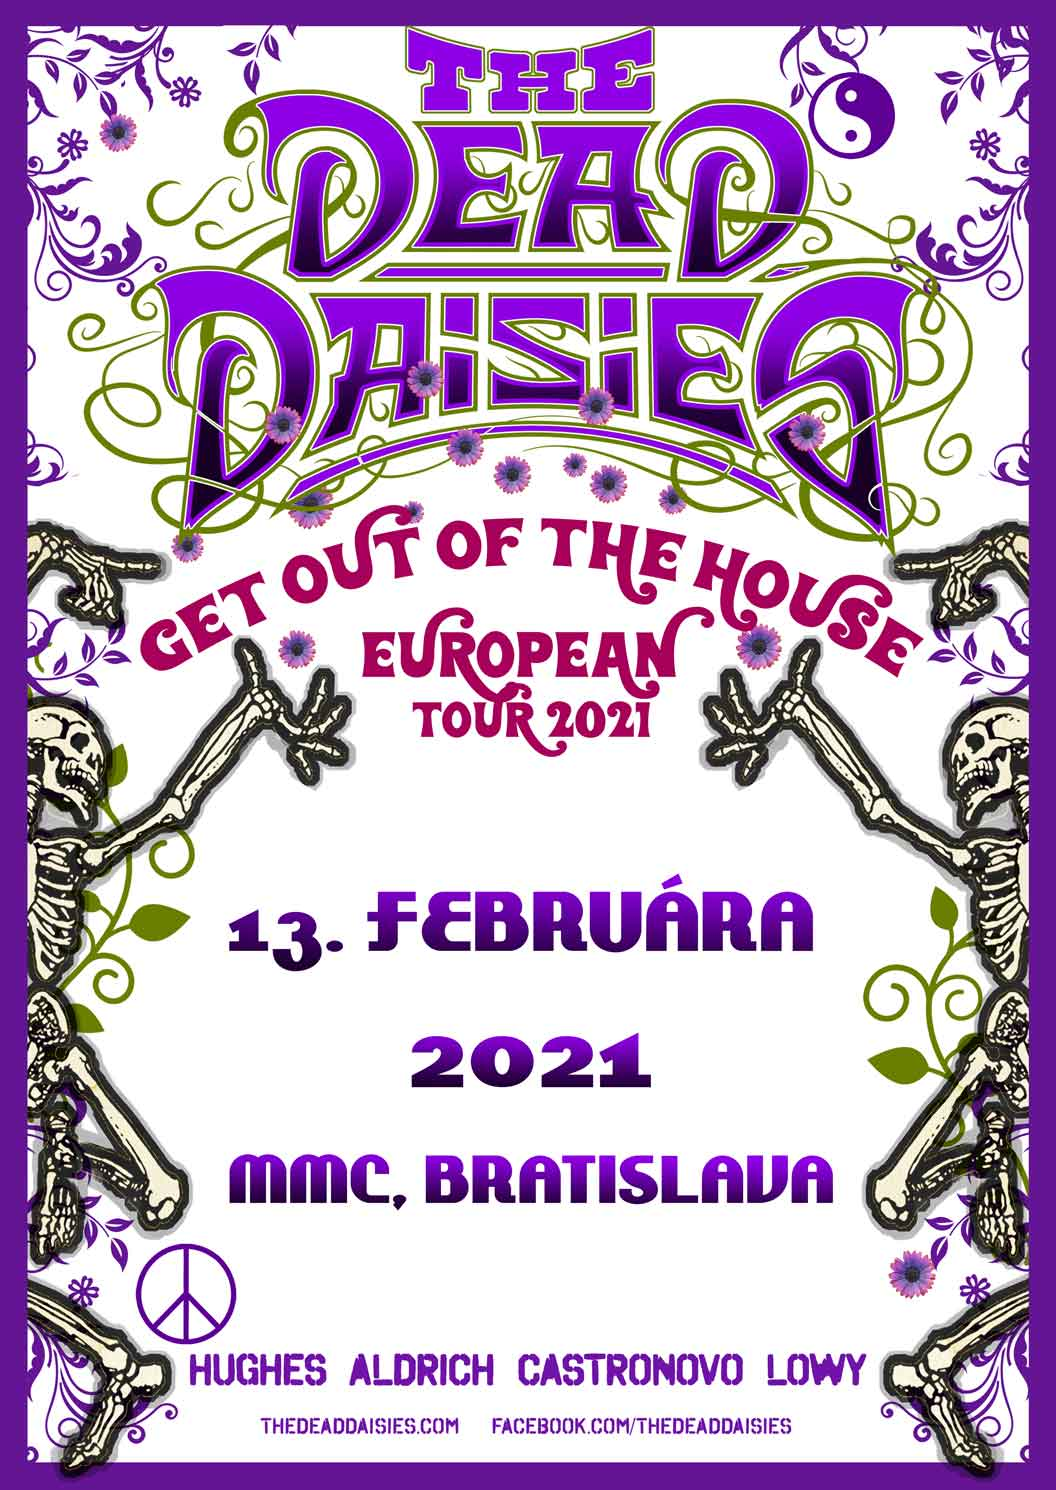 picture The Dead Daisies